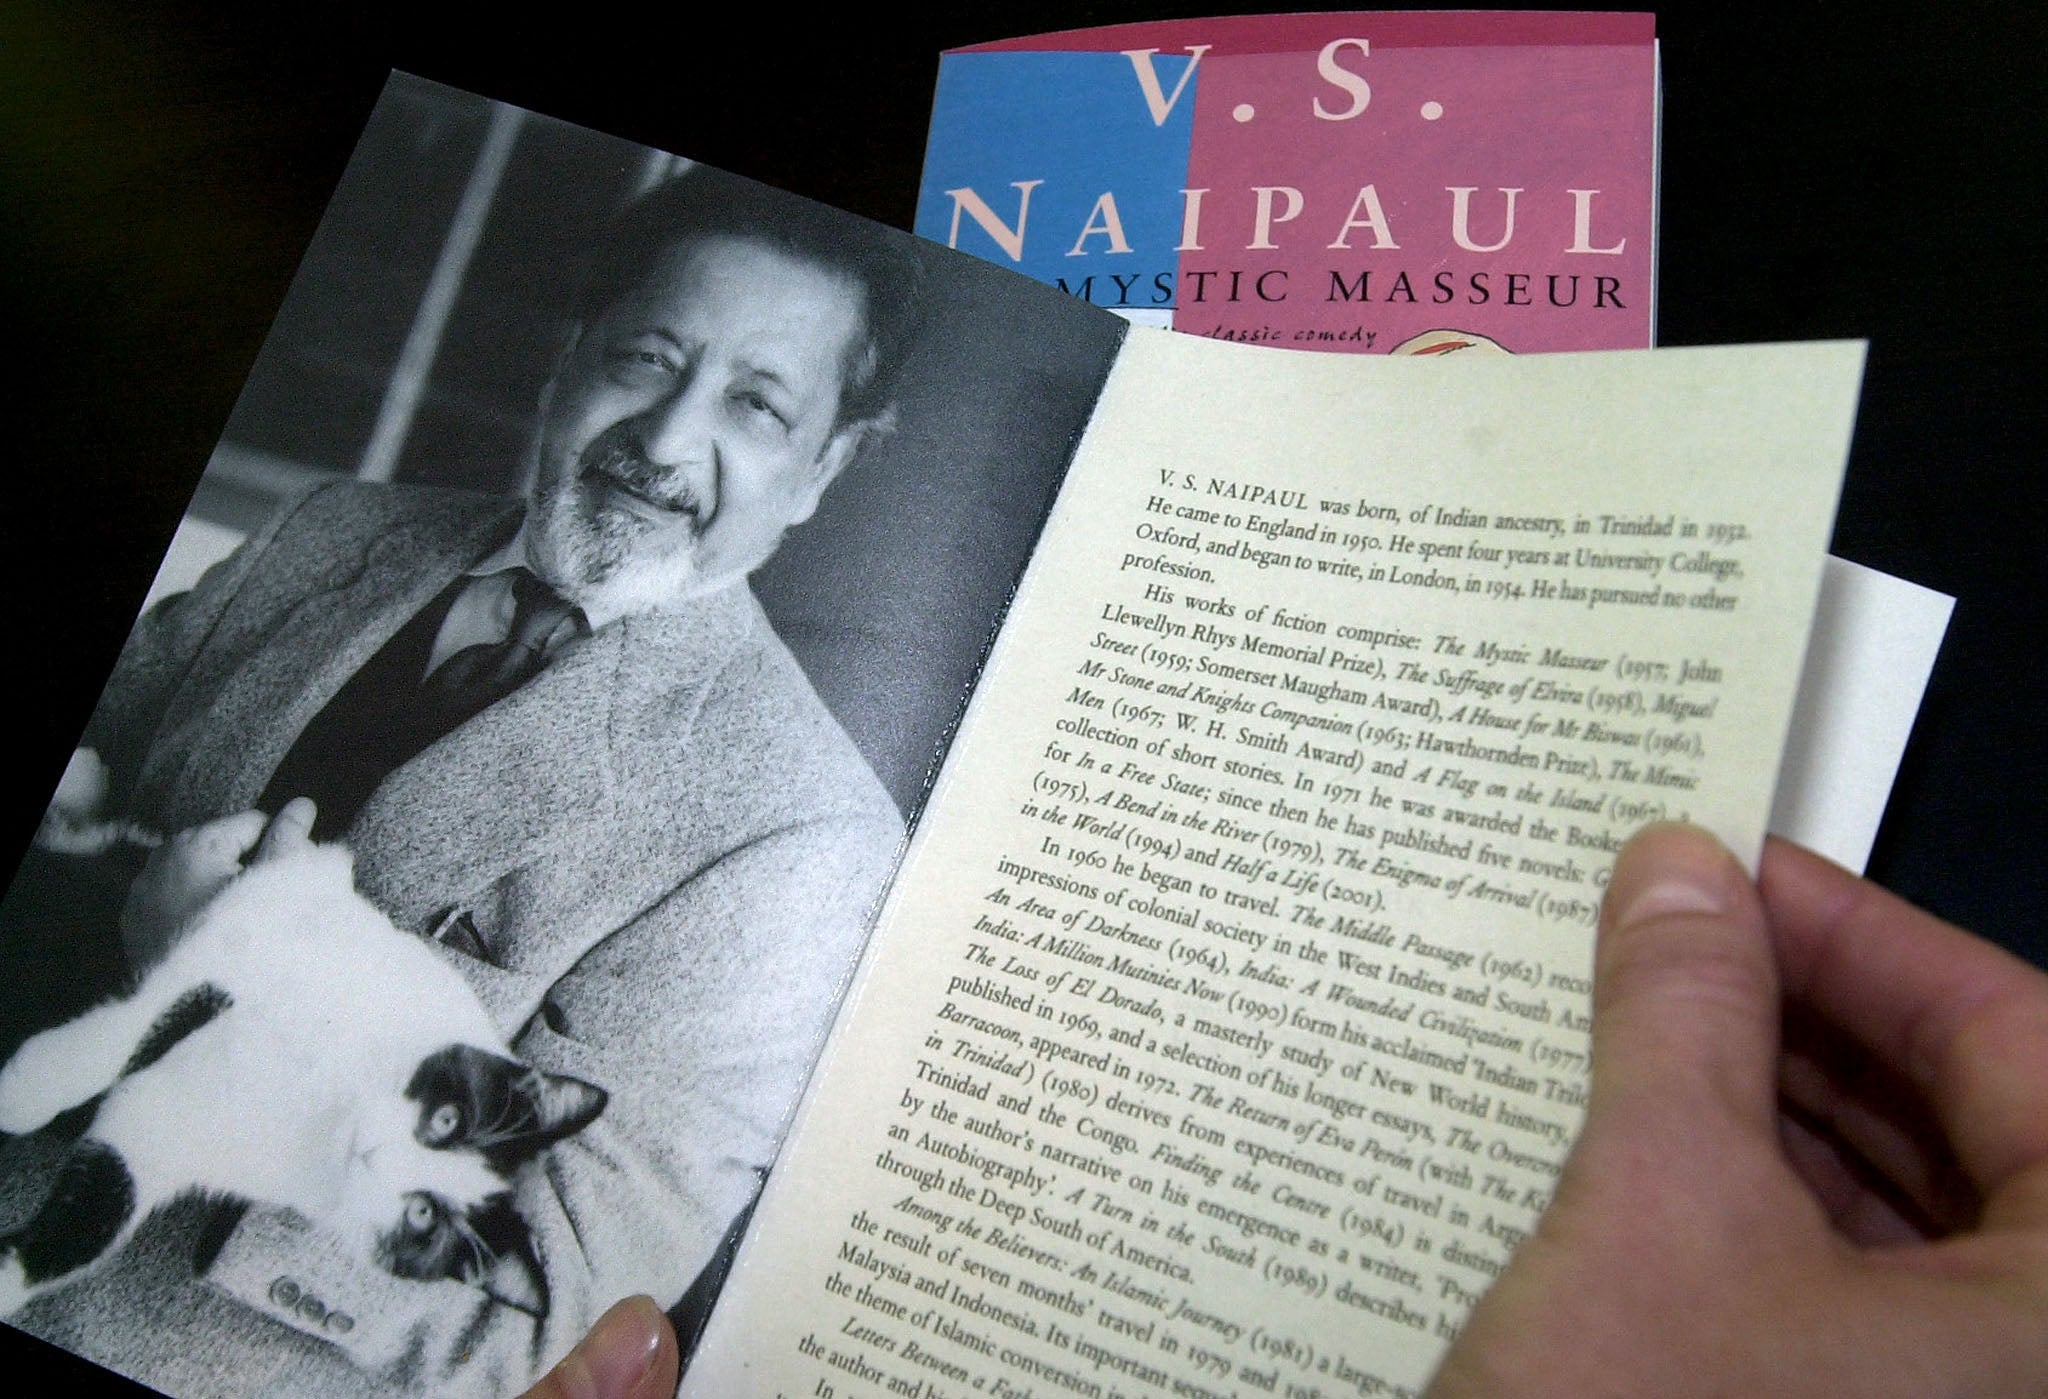 A book by V.S. Naipaul.